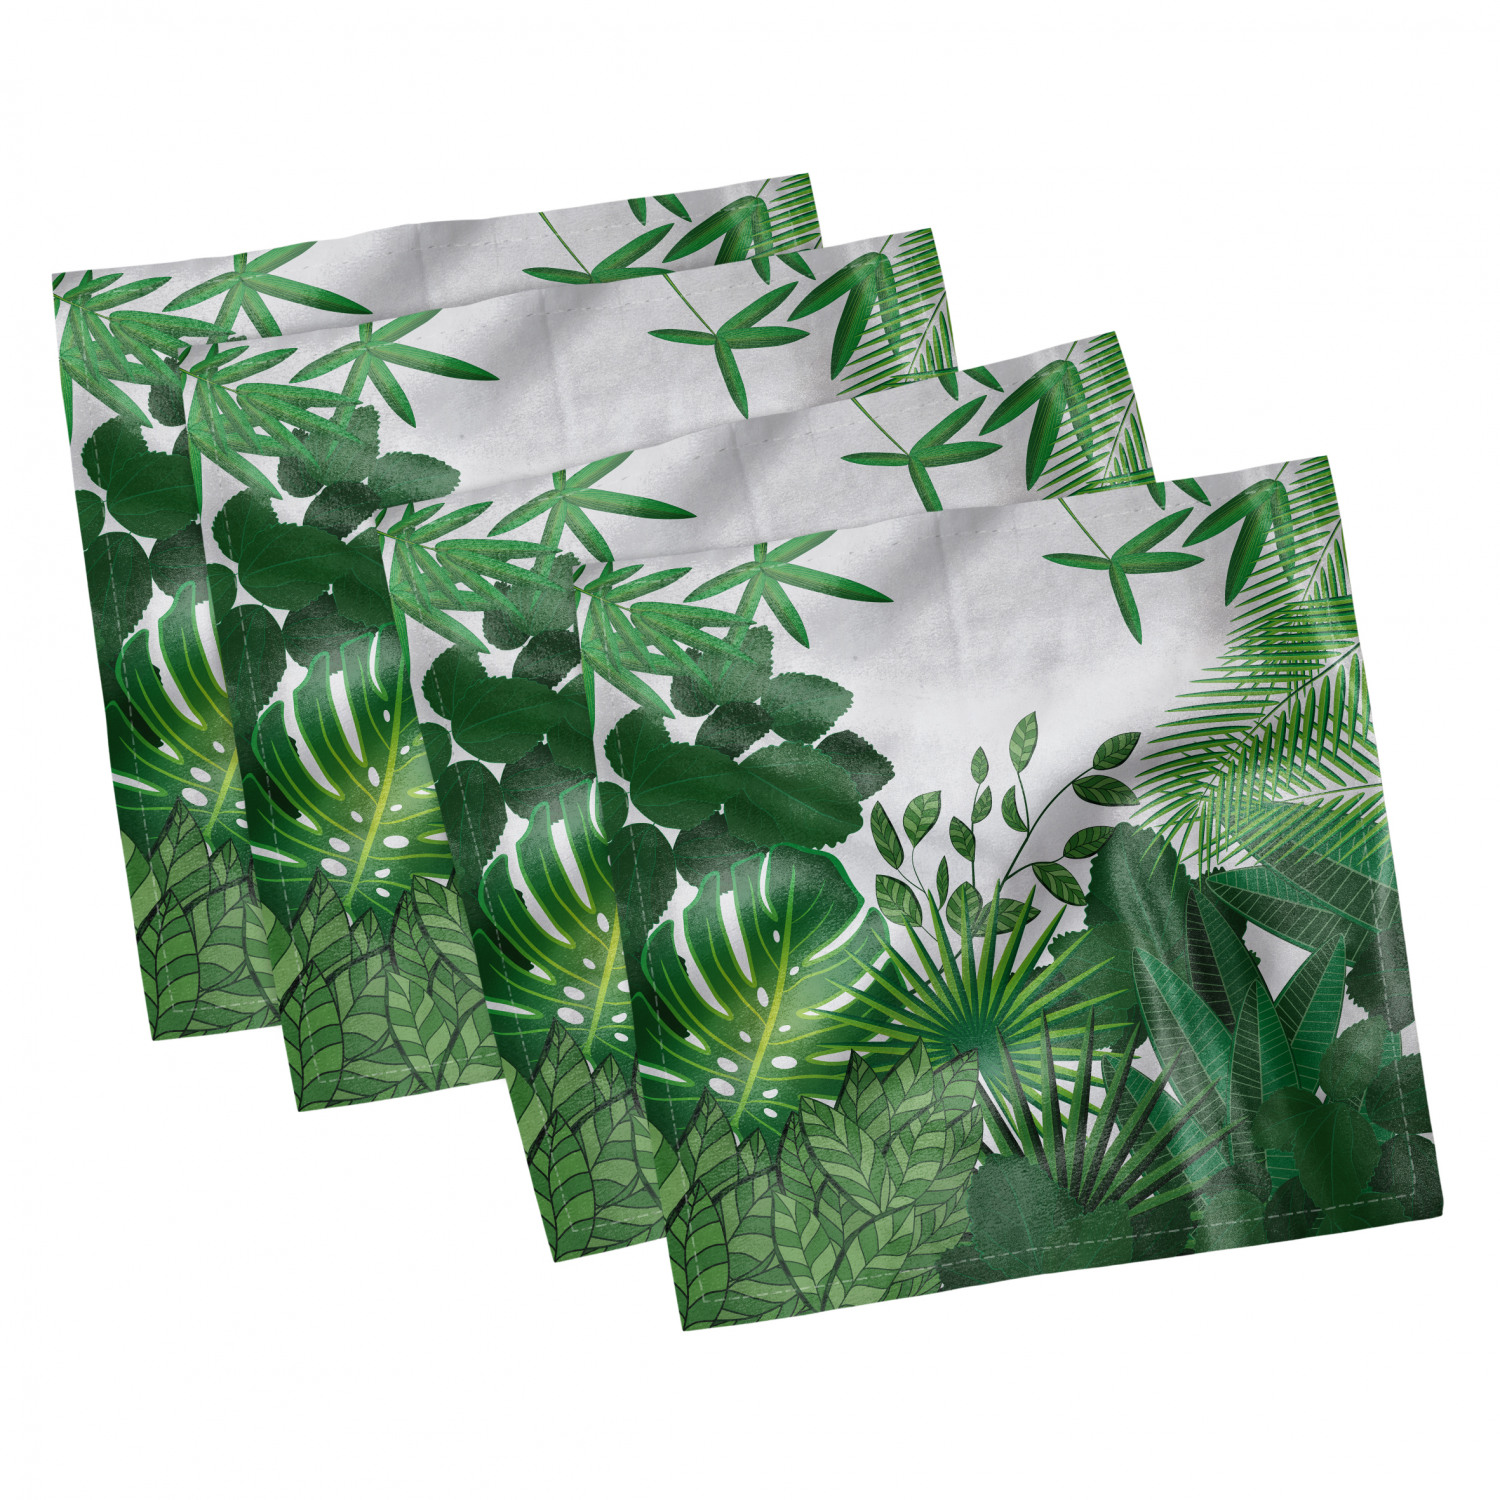 thumbnail 53 - Ambesonne-Leaves-Forest-Decorative-Satin-Napkins-Set-of-4-Party-Dinner-Fabric